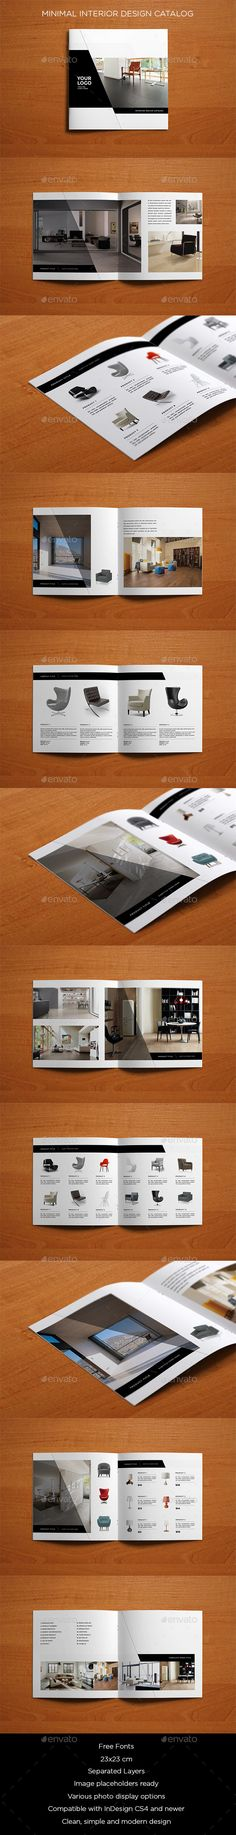 Minimal Interior Design Catalog — InDesign INDD #white #business • Available here → https://graphicriver.net/item/minimal-interior-design-catalog/9849569?ref=pxcr